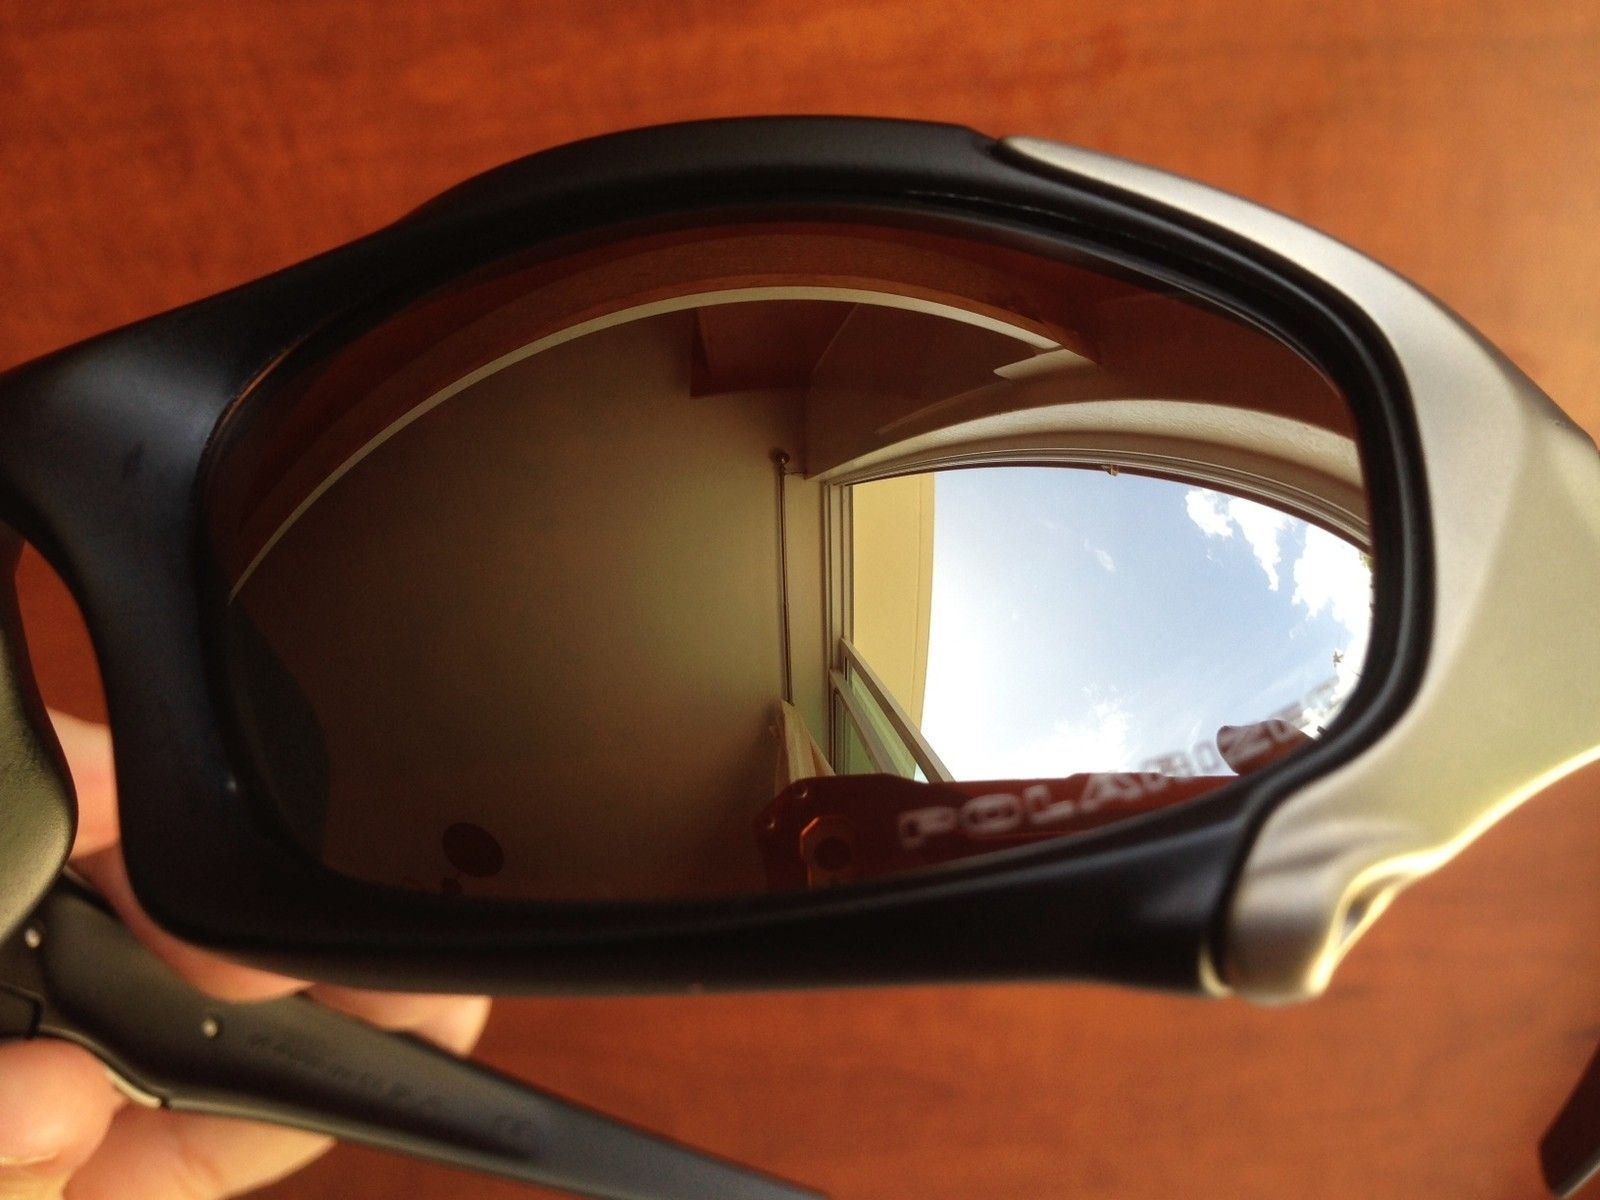 OAKLEY ELITE PIT BOSS 1 MATTE BLACK / TITANIUM / POL BLACK IRIDIUM SUNGLASSES OR TRADE ROMEO 1 - IMG_7237.JPG